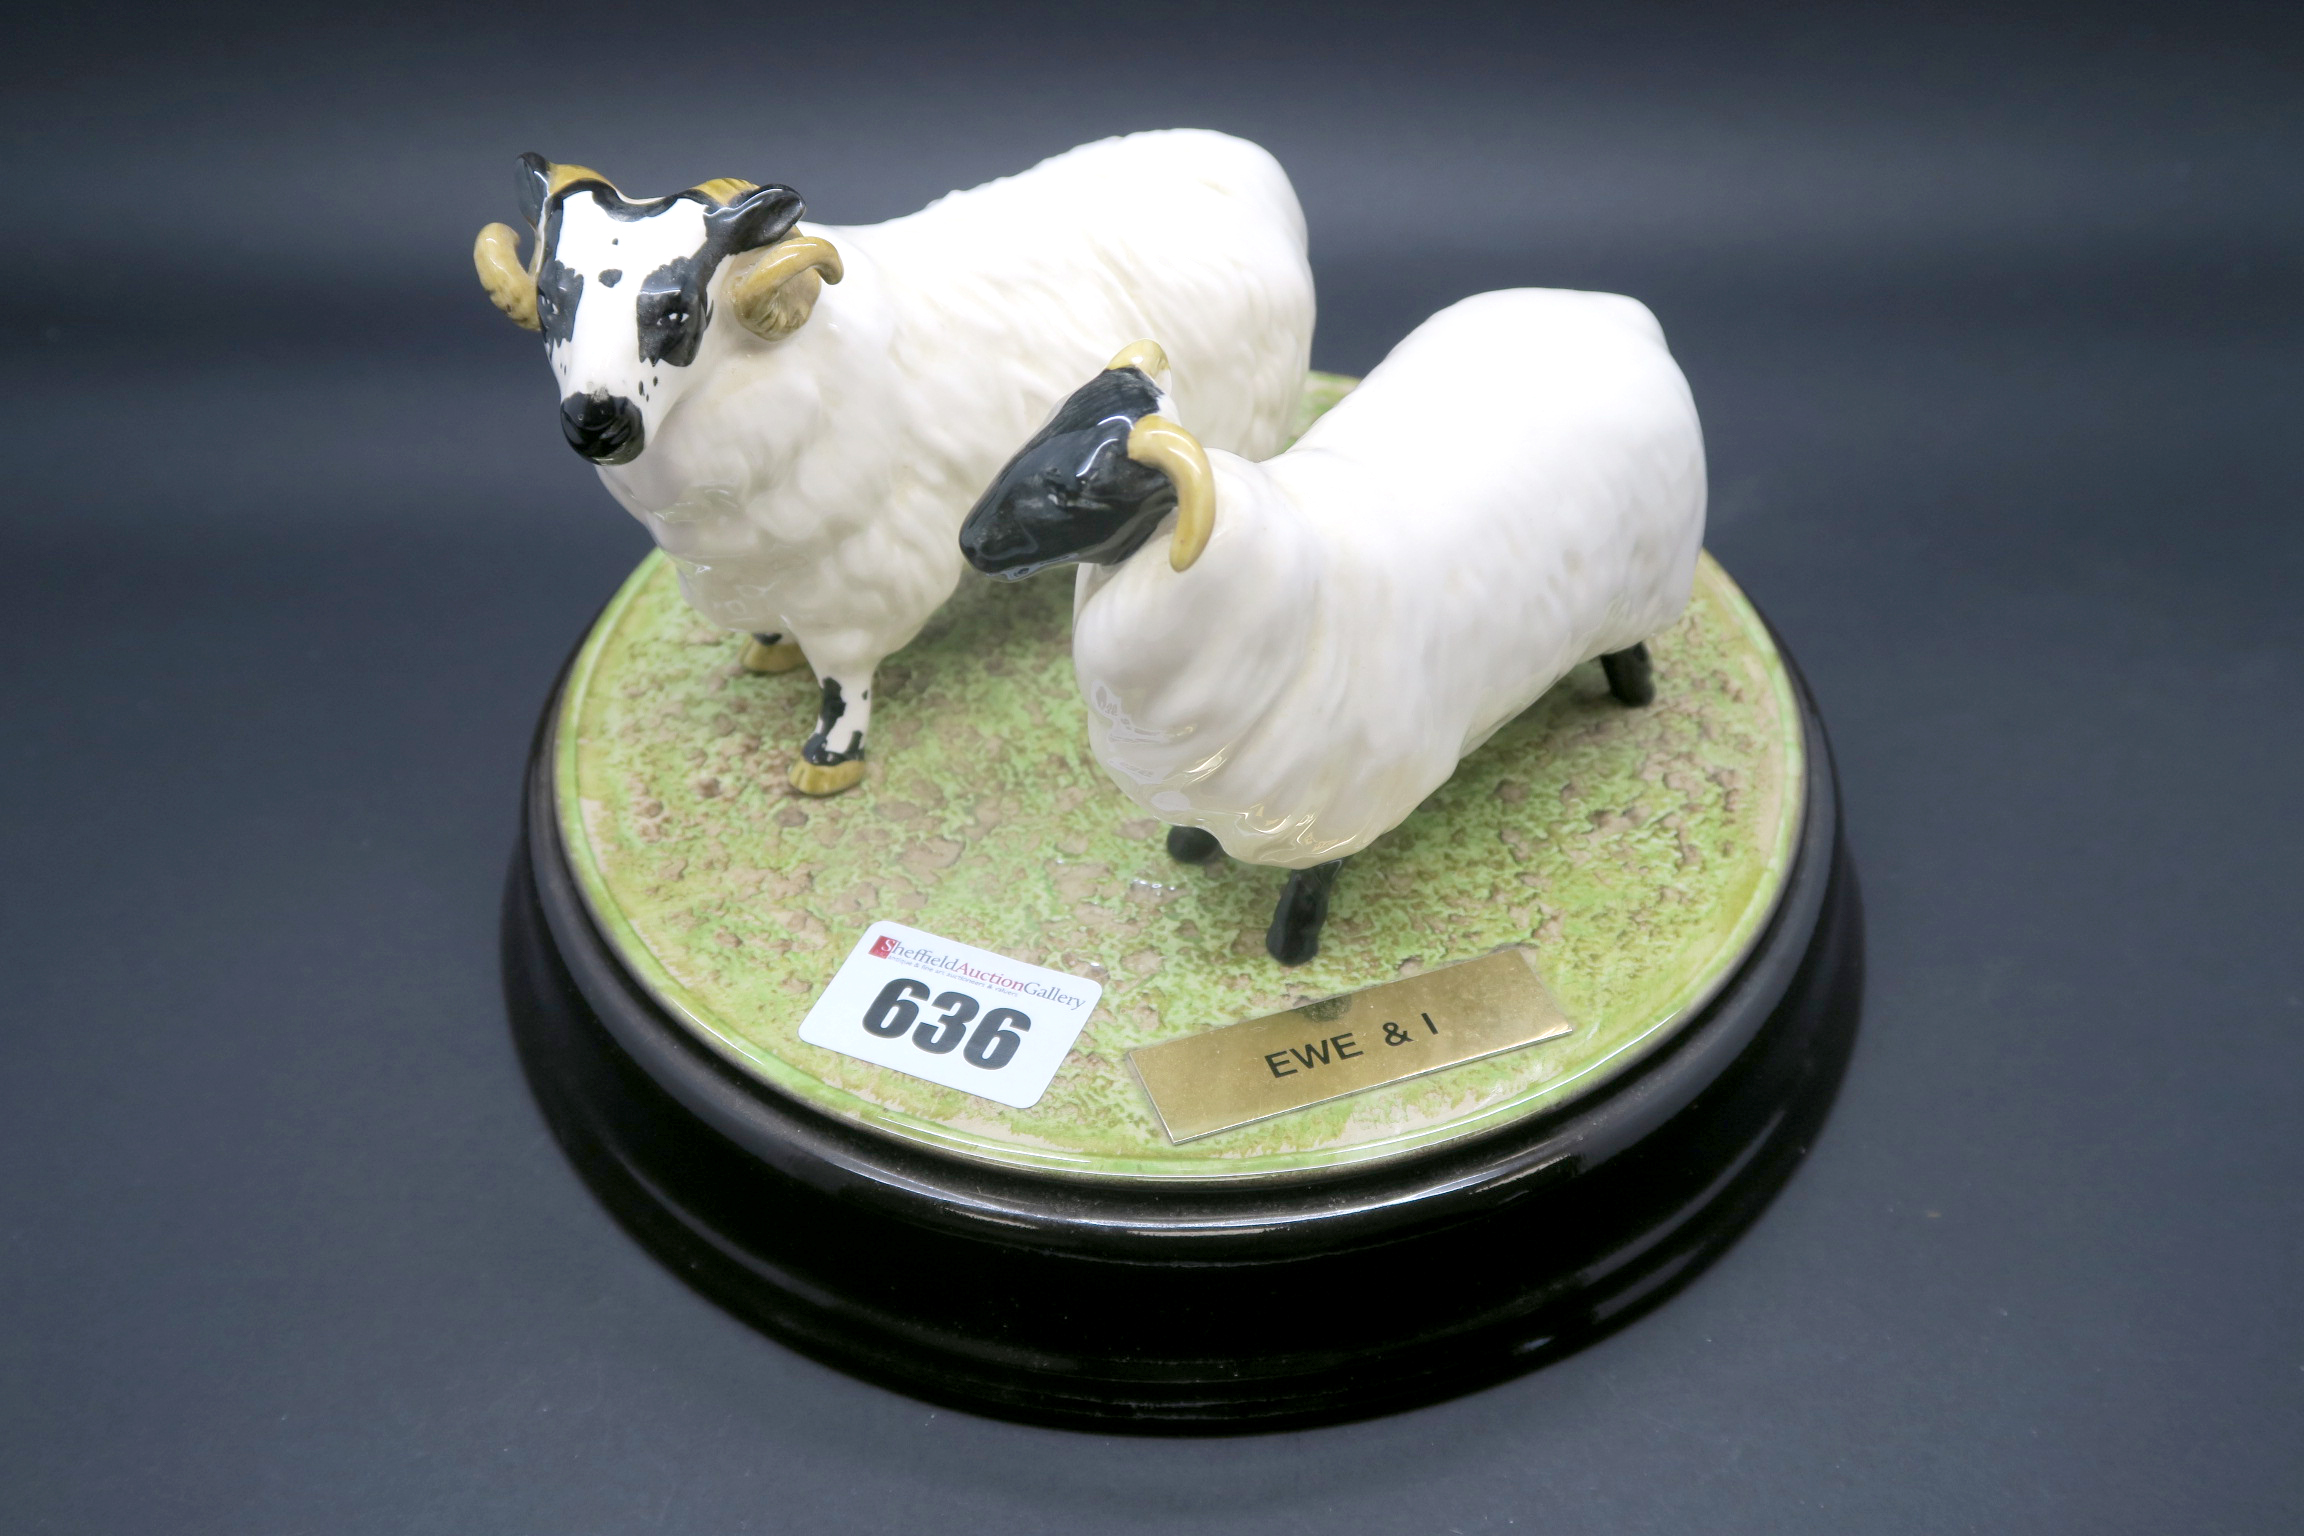 """Lot 636 - Beswick Pottery """"Ewe and I"""", on a circular tableau base, impressed and printed marks. (3)"""